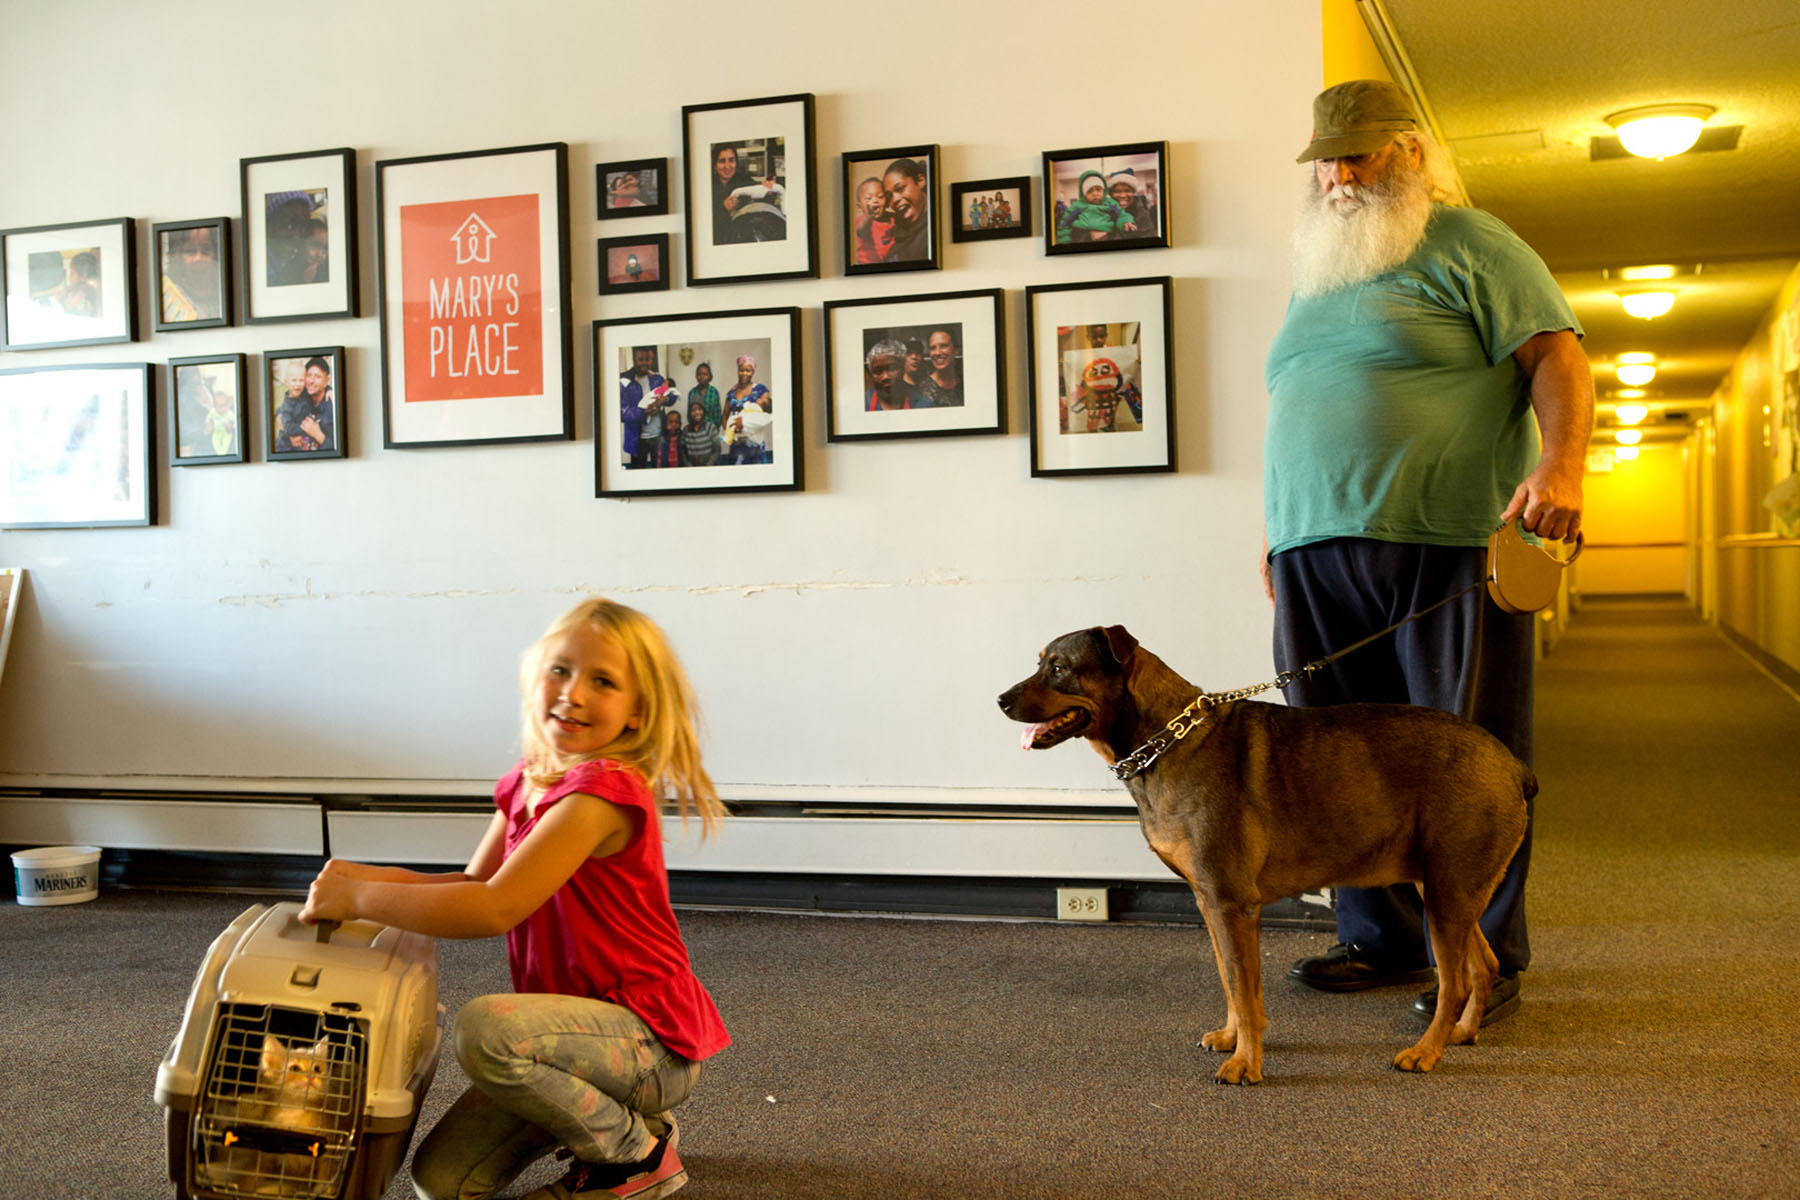 Krystallynn Delp, 7, cares for Curious George, an eight week old kitten with her grandfather, Bob Delp and his dog Momma at Mary's Place Guest Rooms in South Lake Union in Seattle, Wash. on June 23, 2016. Mary's Place Guest Rooms provide transitional housing for families including those with pets. The family had previously been sleeping in their van and say they wouldn't have gone to a shelter if they weren't allowed to bring their pets. (photo © Karen Ducey Photography) Story published on Crosscut.com and AnimalsNorthwest.com